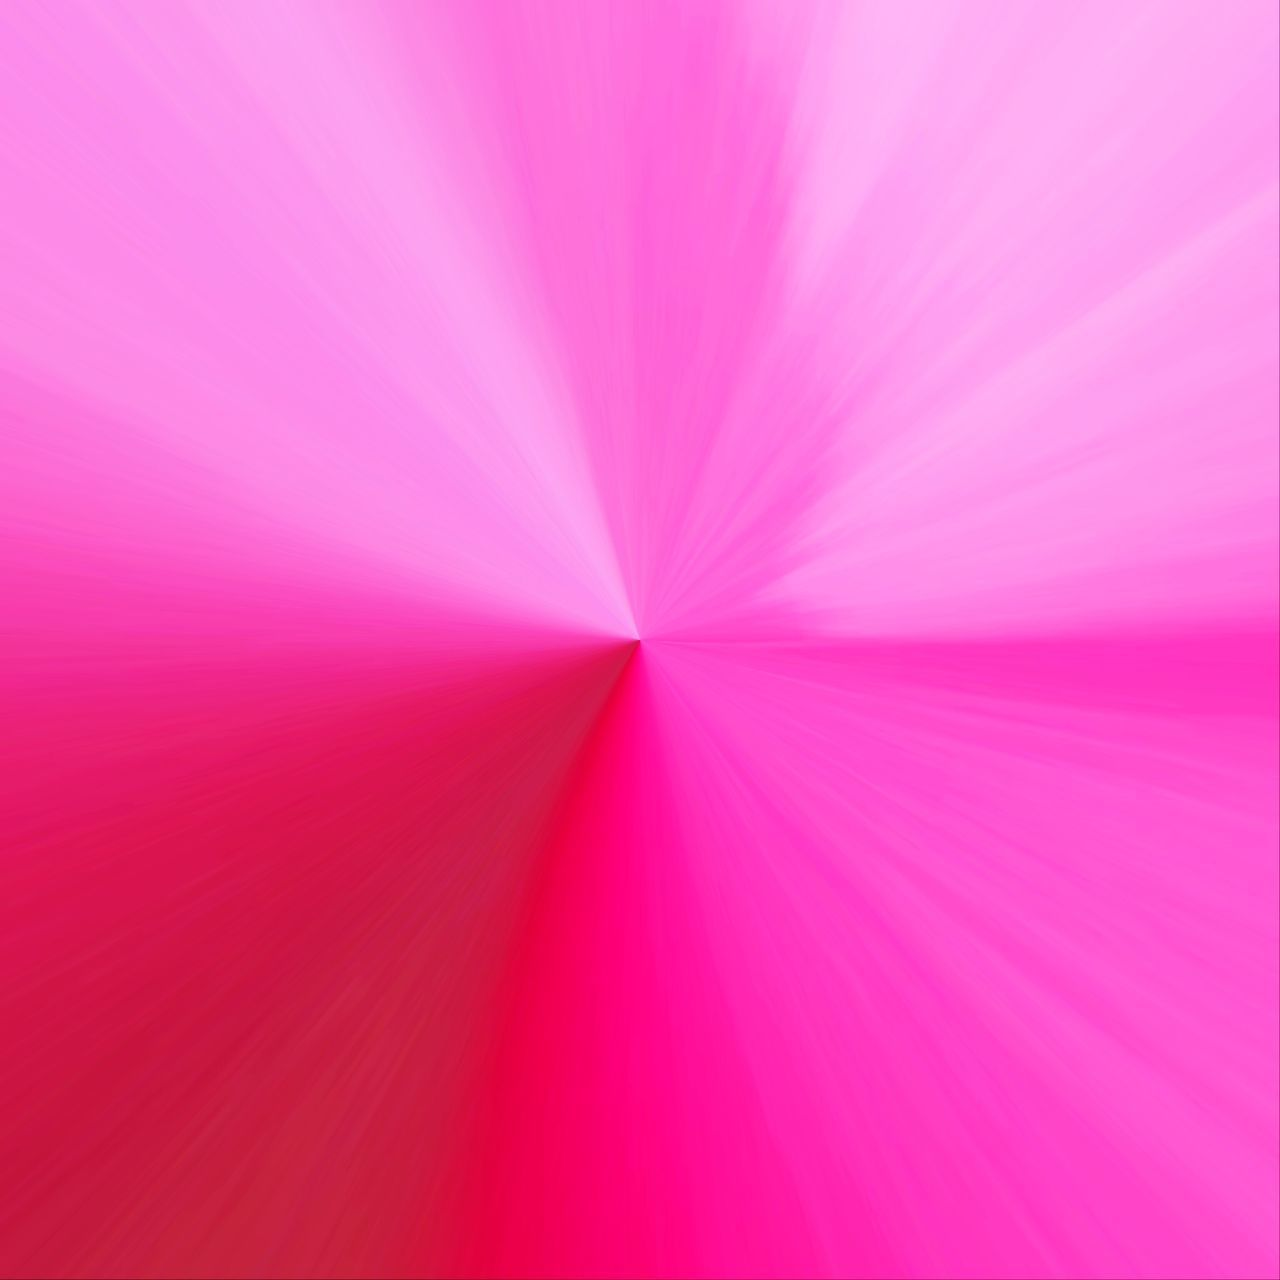 Backgrounds Pink Color Abstract Full Frame Studio Shot Purple Abstract Backgrounds No People Close-up Day Art, Drawing, Creativity ArtWork Artist Artistic Arts Culture And Entertainment Art Gallery Artistic Expression Fineart Getting Inspired Drawing - Activity New Talents On EyeEm Indoors  EyeEm The Best Shots Abstract Photography Abstract Art EyeEmNewHere